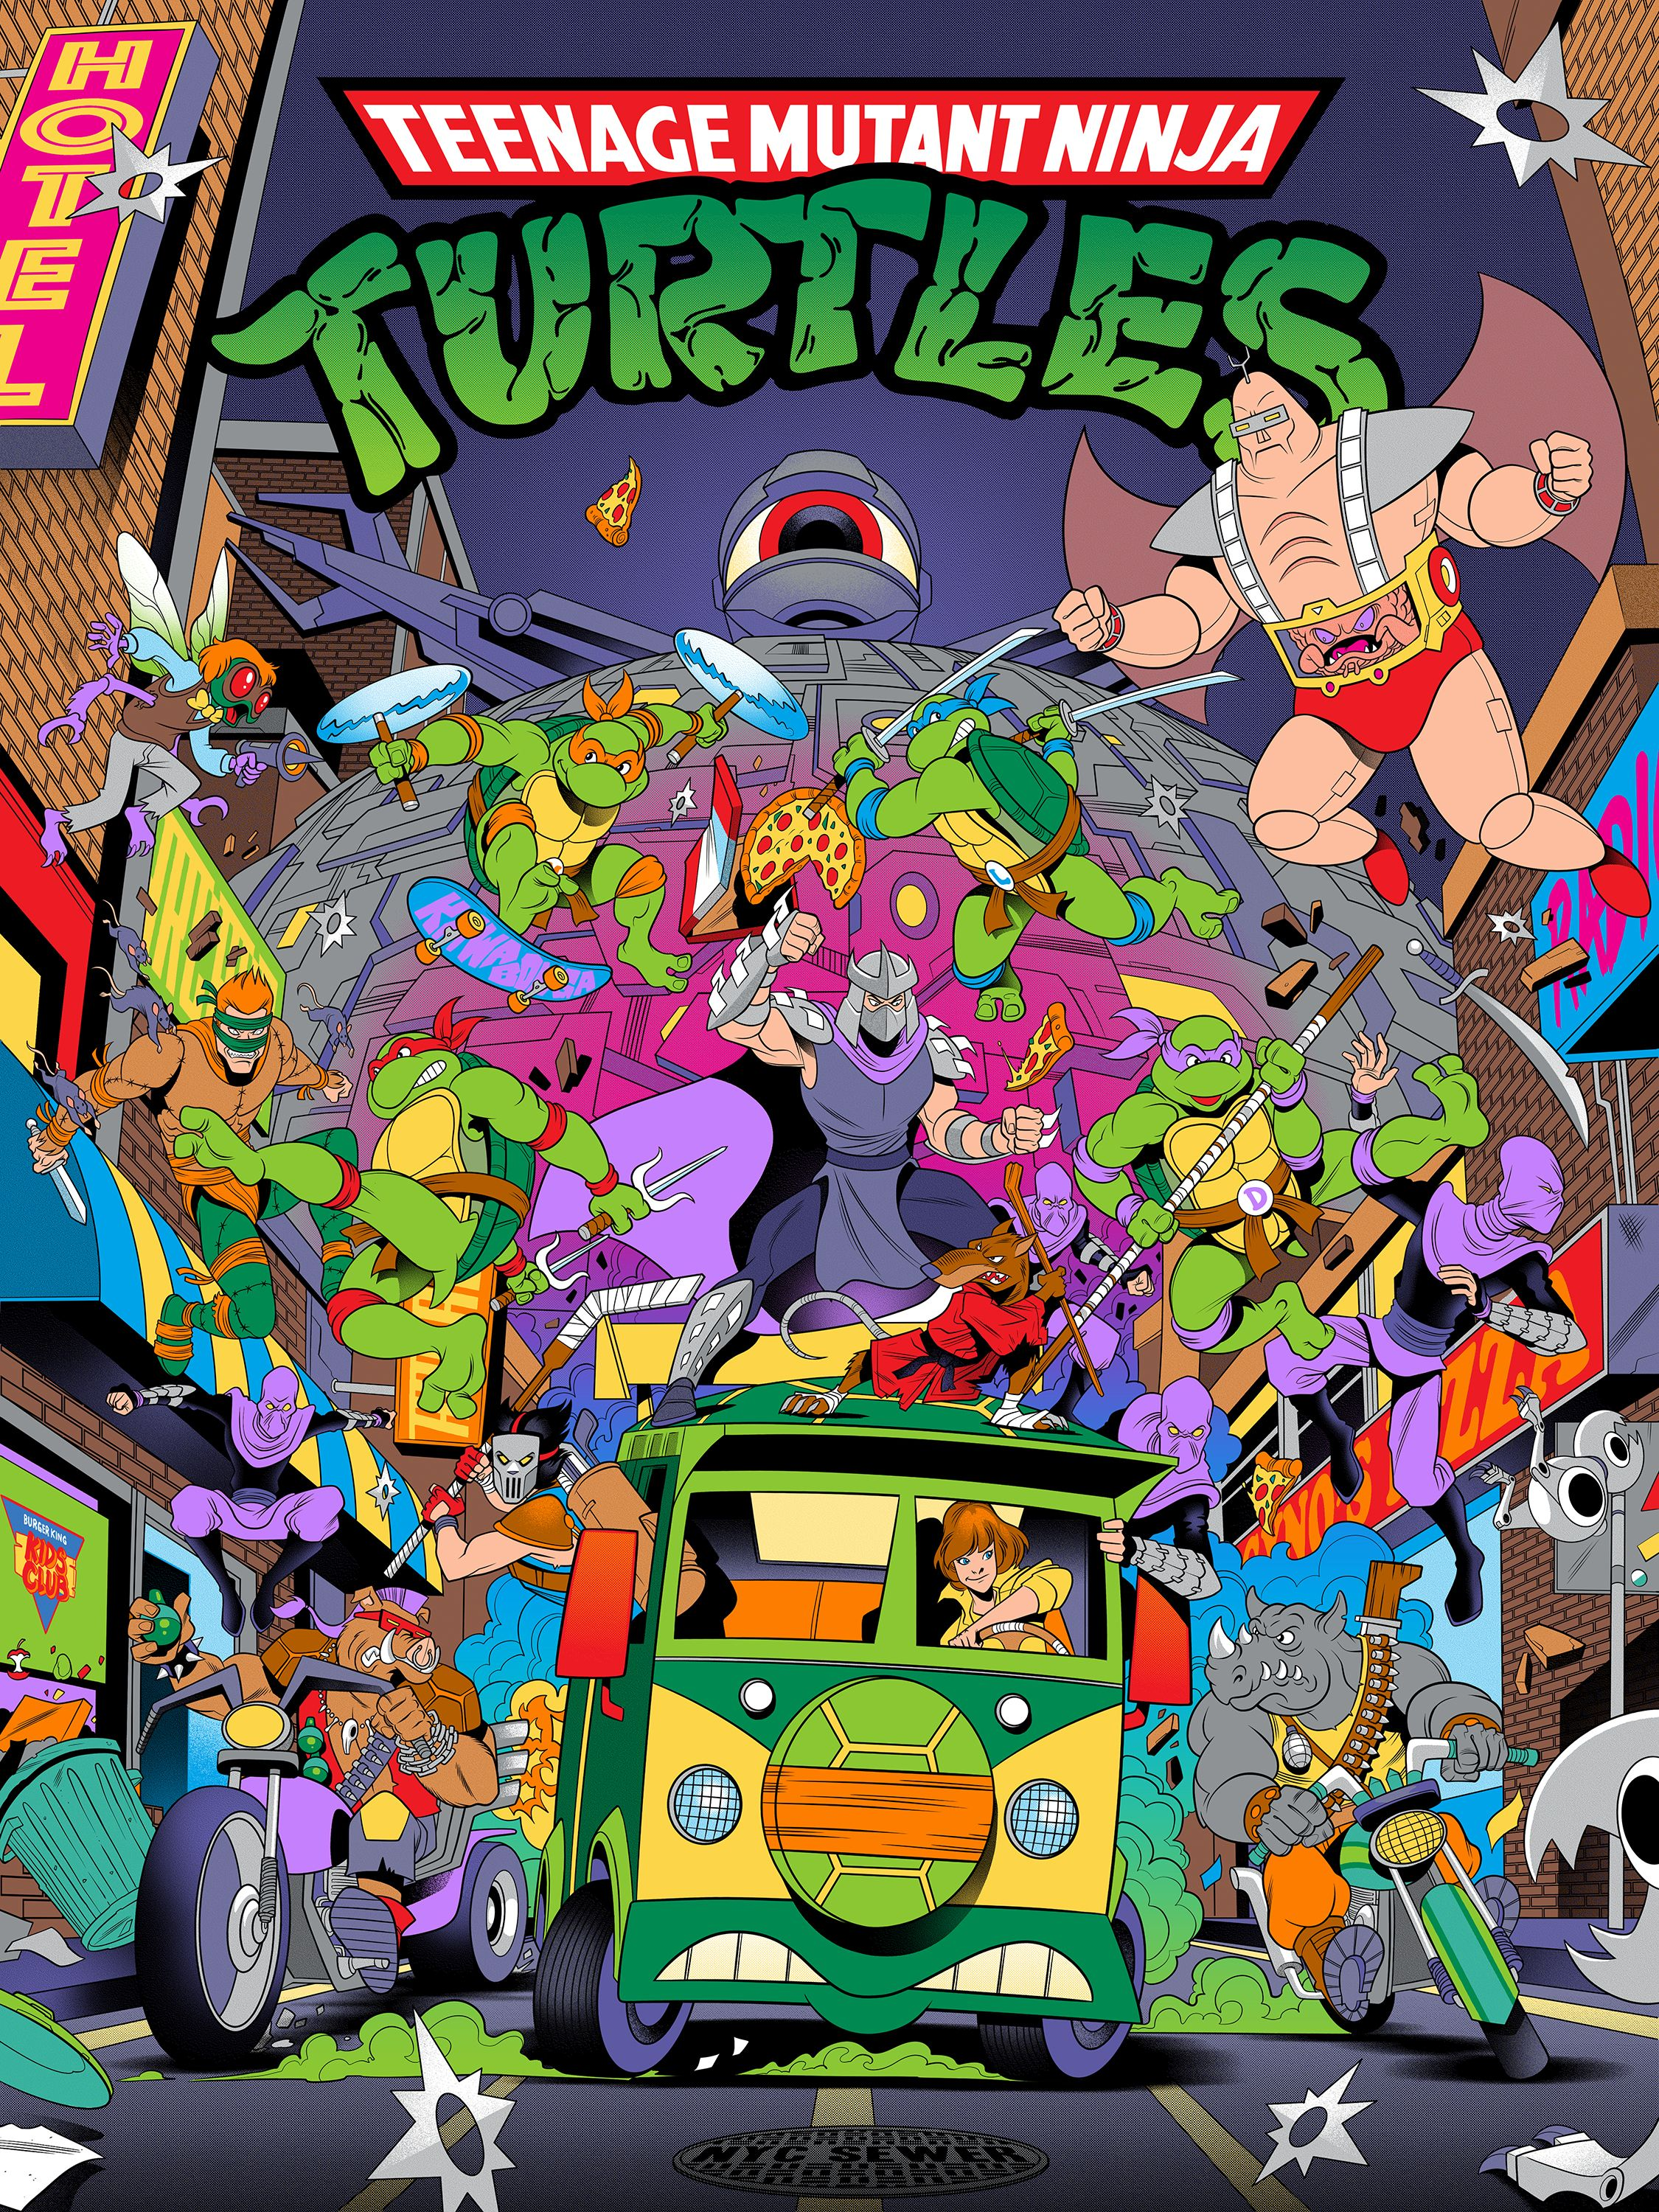 TEENAGE MUTANT NINJA TURTLES 80's TV CARTOON on Behance